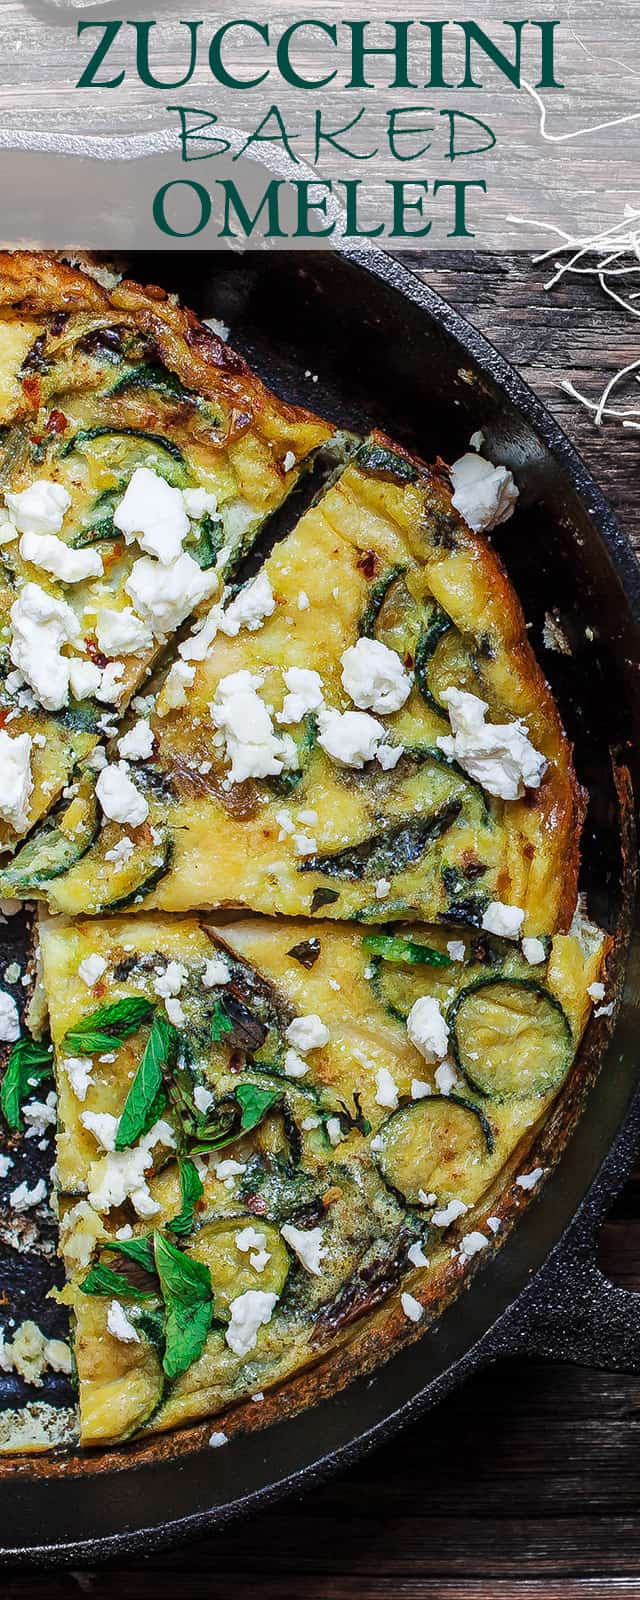 Middle Eastern Zuchini Baked Omelet Recipe | The Mediterranean Dish. A dense, flavor packed version of fritatta recipe. With zucchini, onions, fresh mint and olive oil. The perfect breakfast or brunch. See the step-by-step at The Mediterranean Dish!